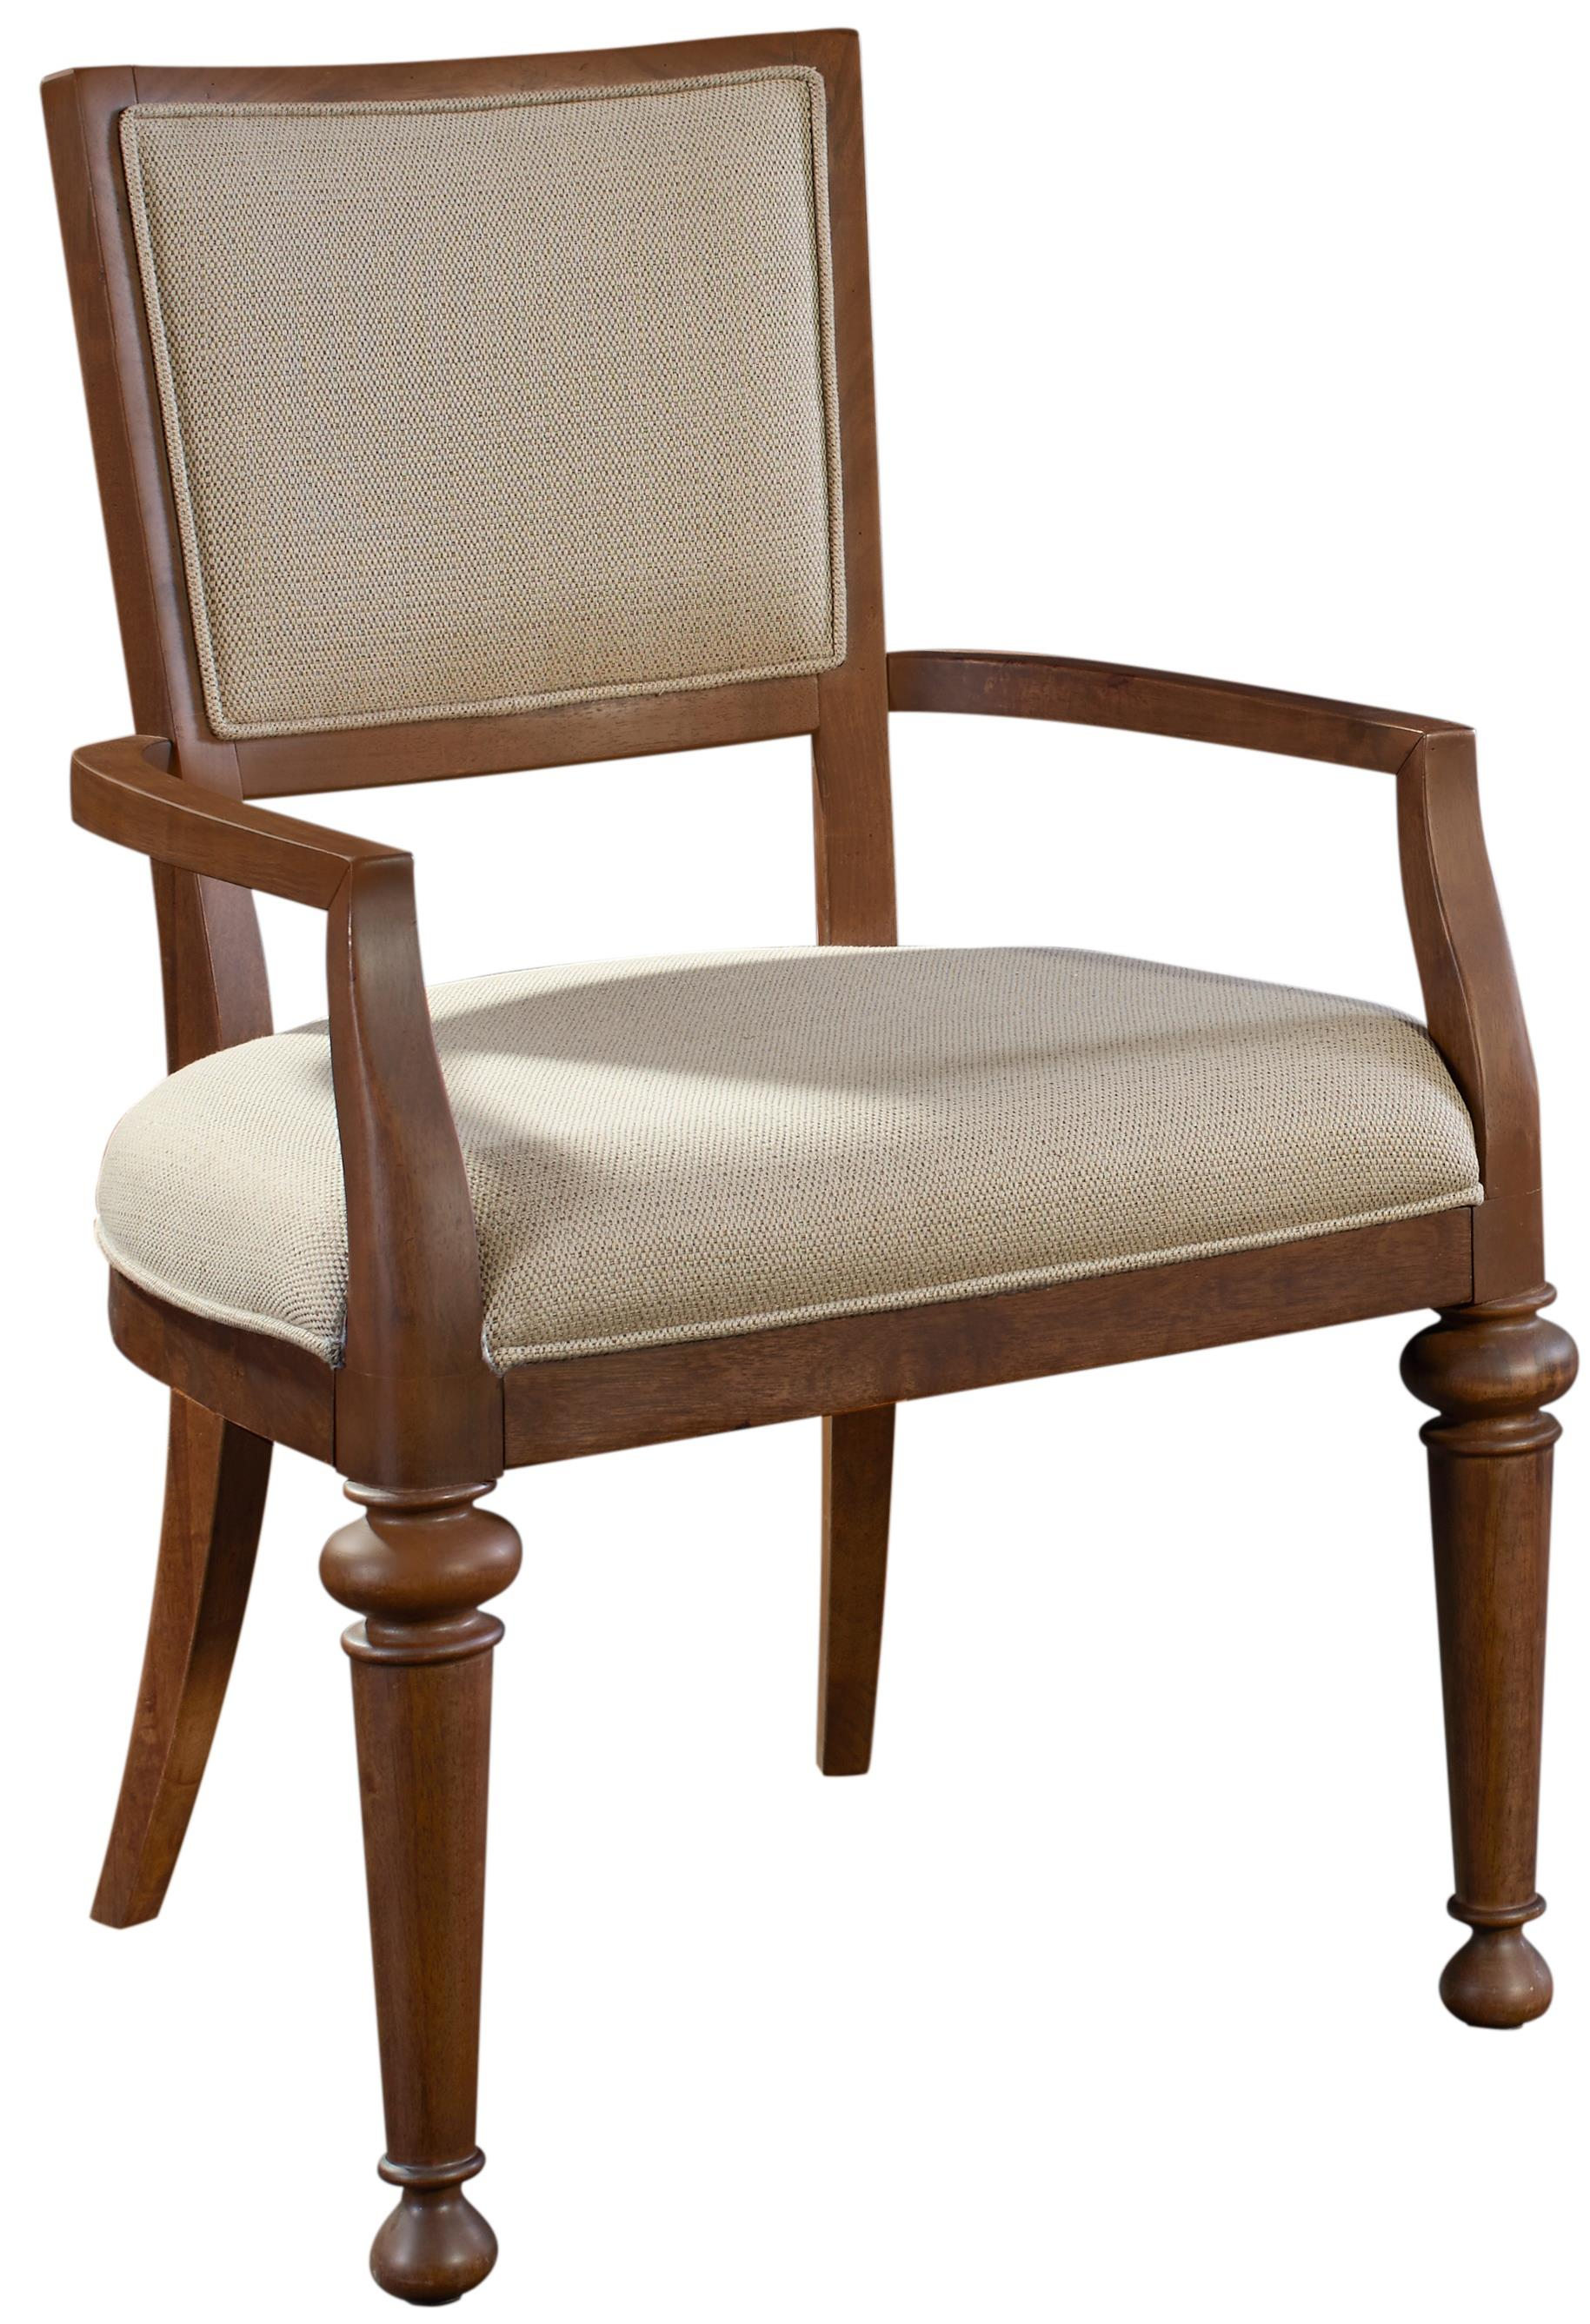 Broyhill Furniture Cascade Upholstered Arm Chair - Item Number: 4940-582